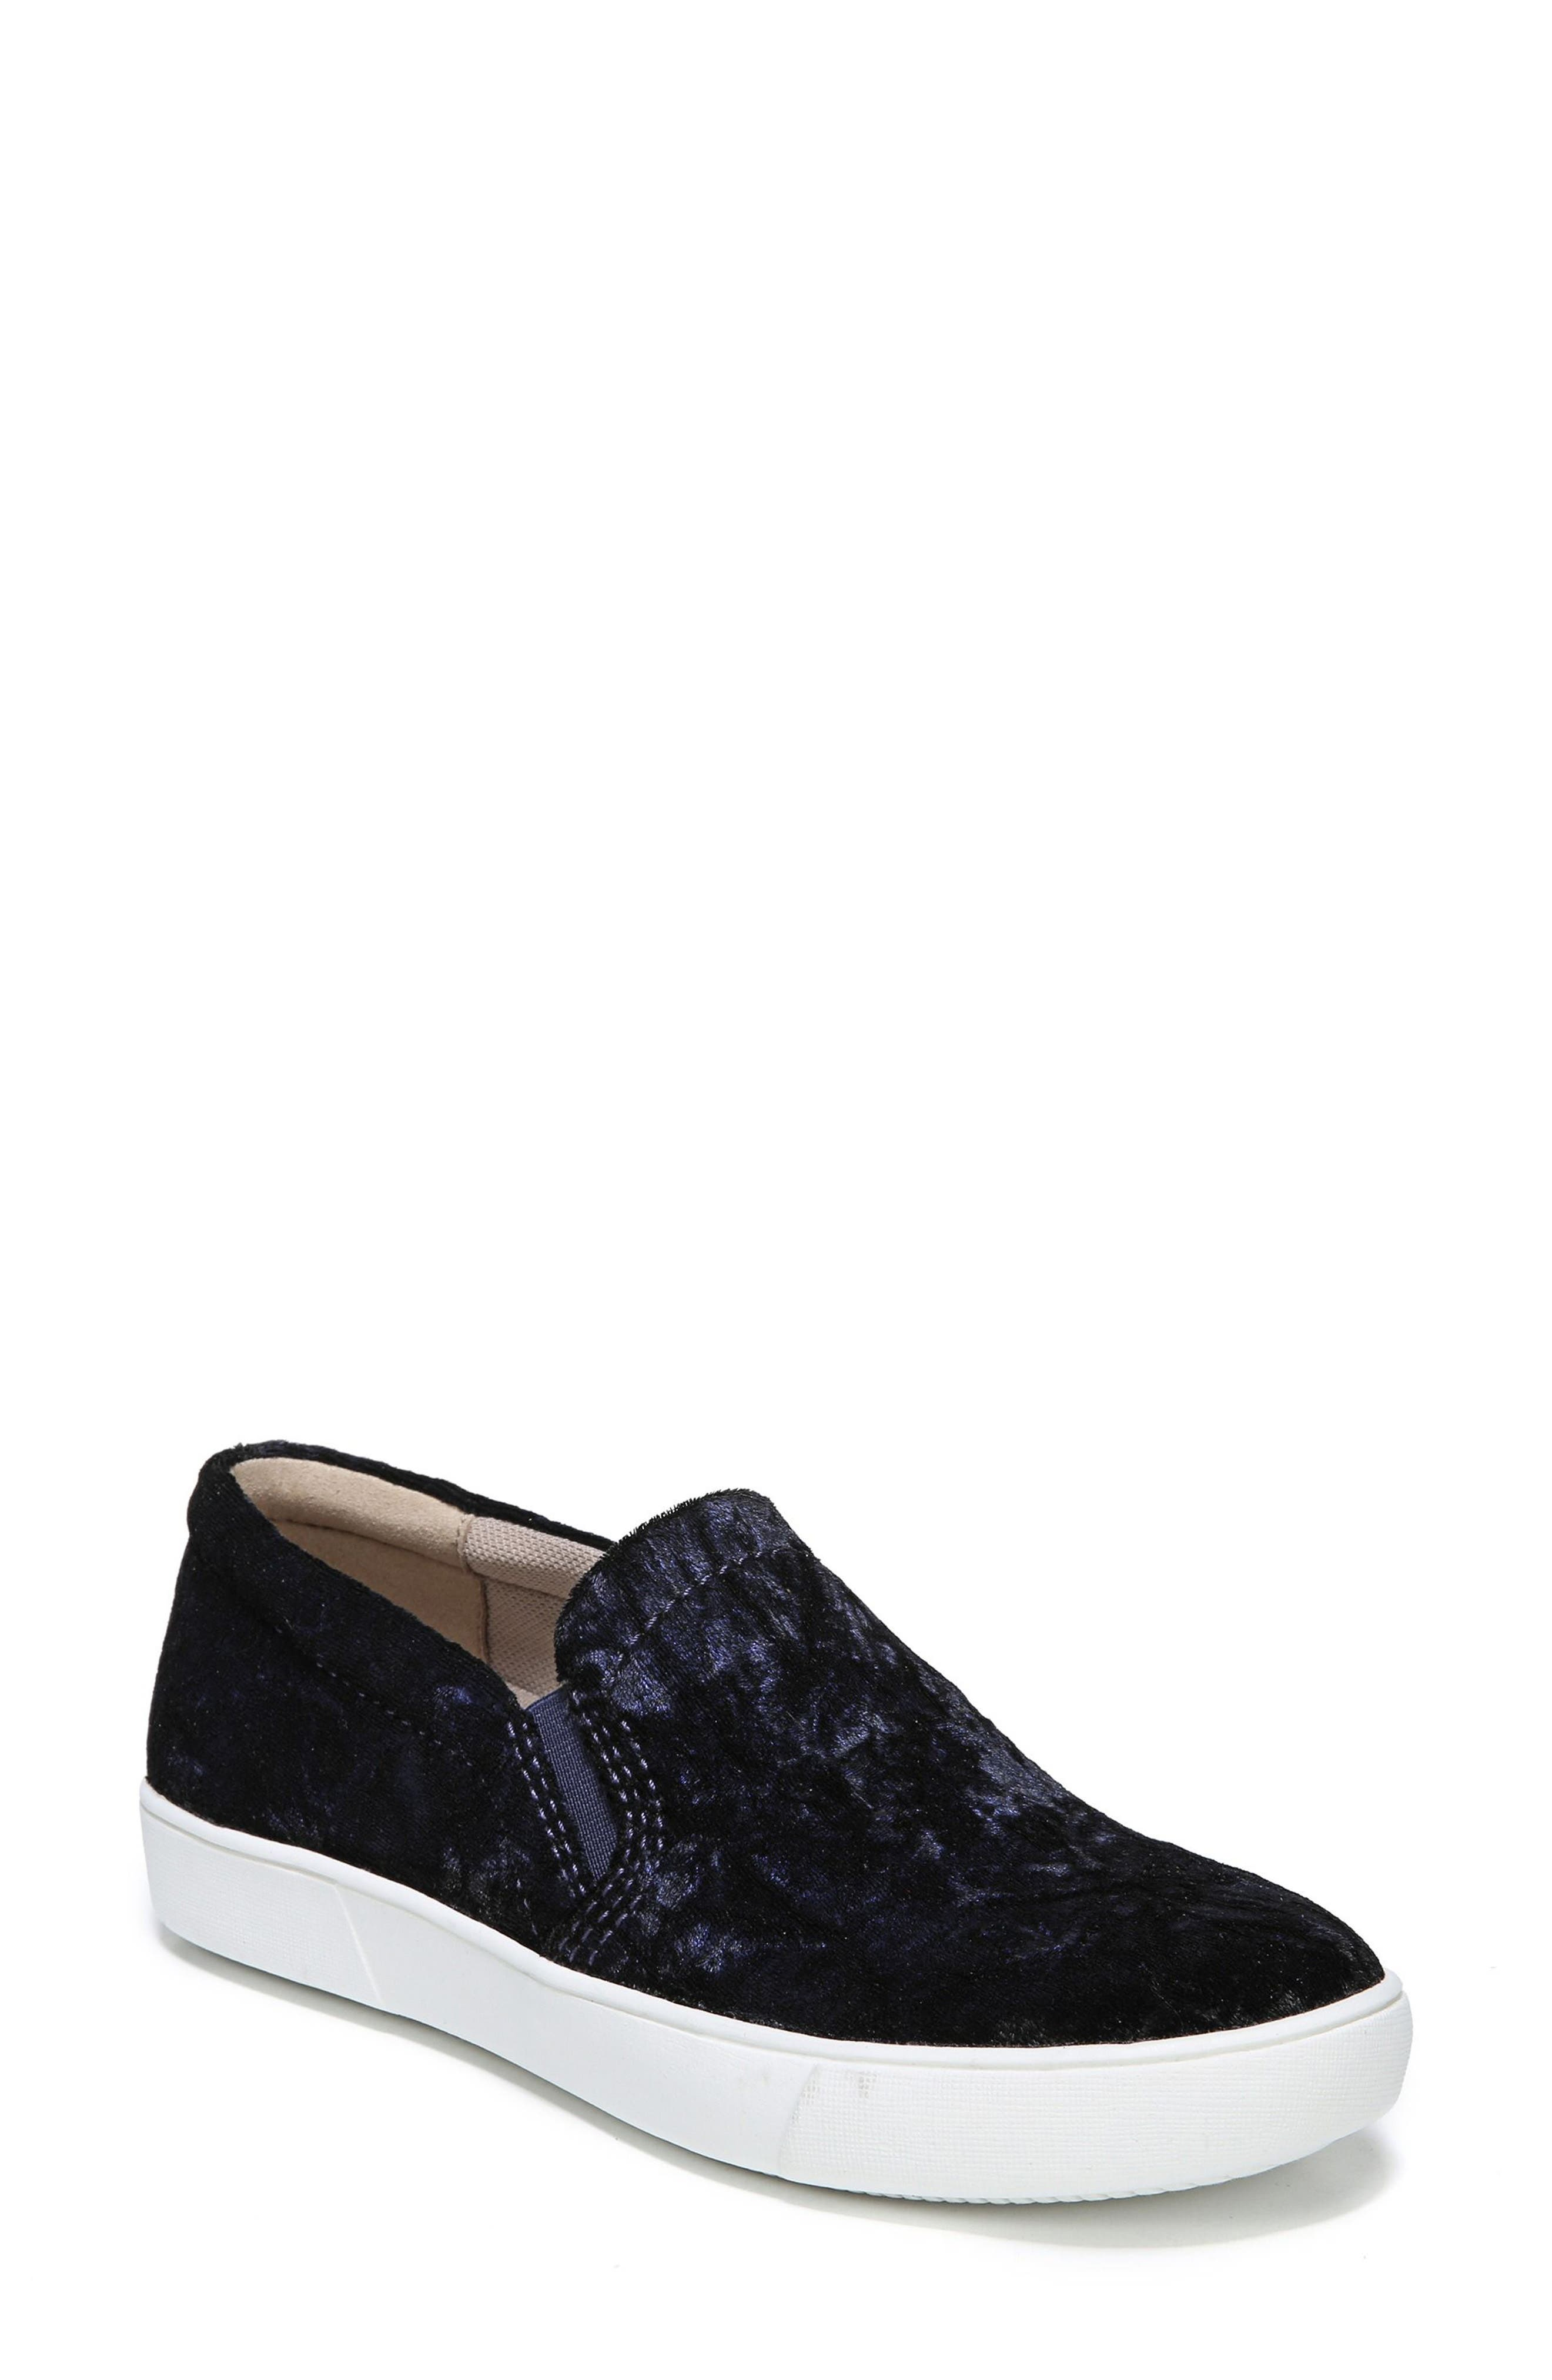 NATURALIZER, Marianne Slip-On Sneaker, Main thumbnail 1, color, NAVY VELVET